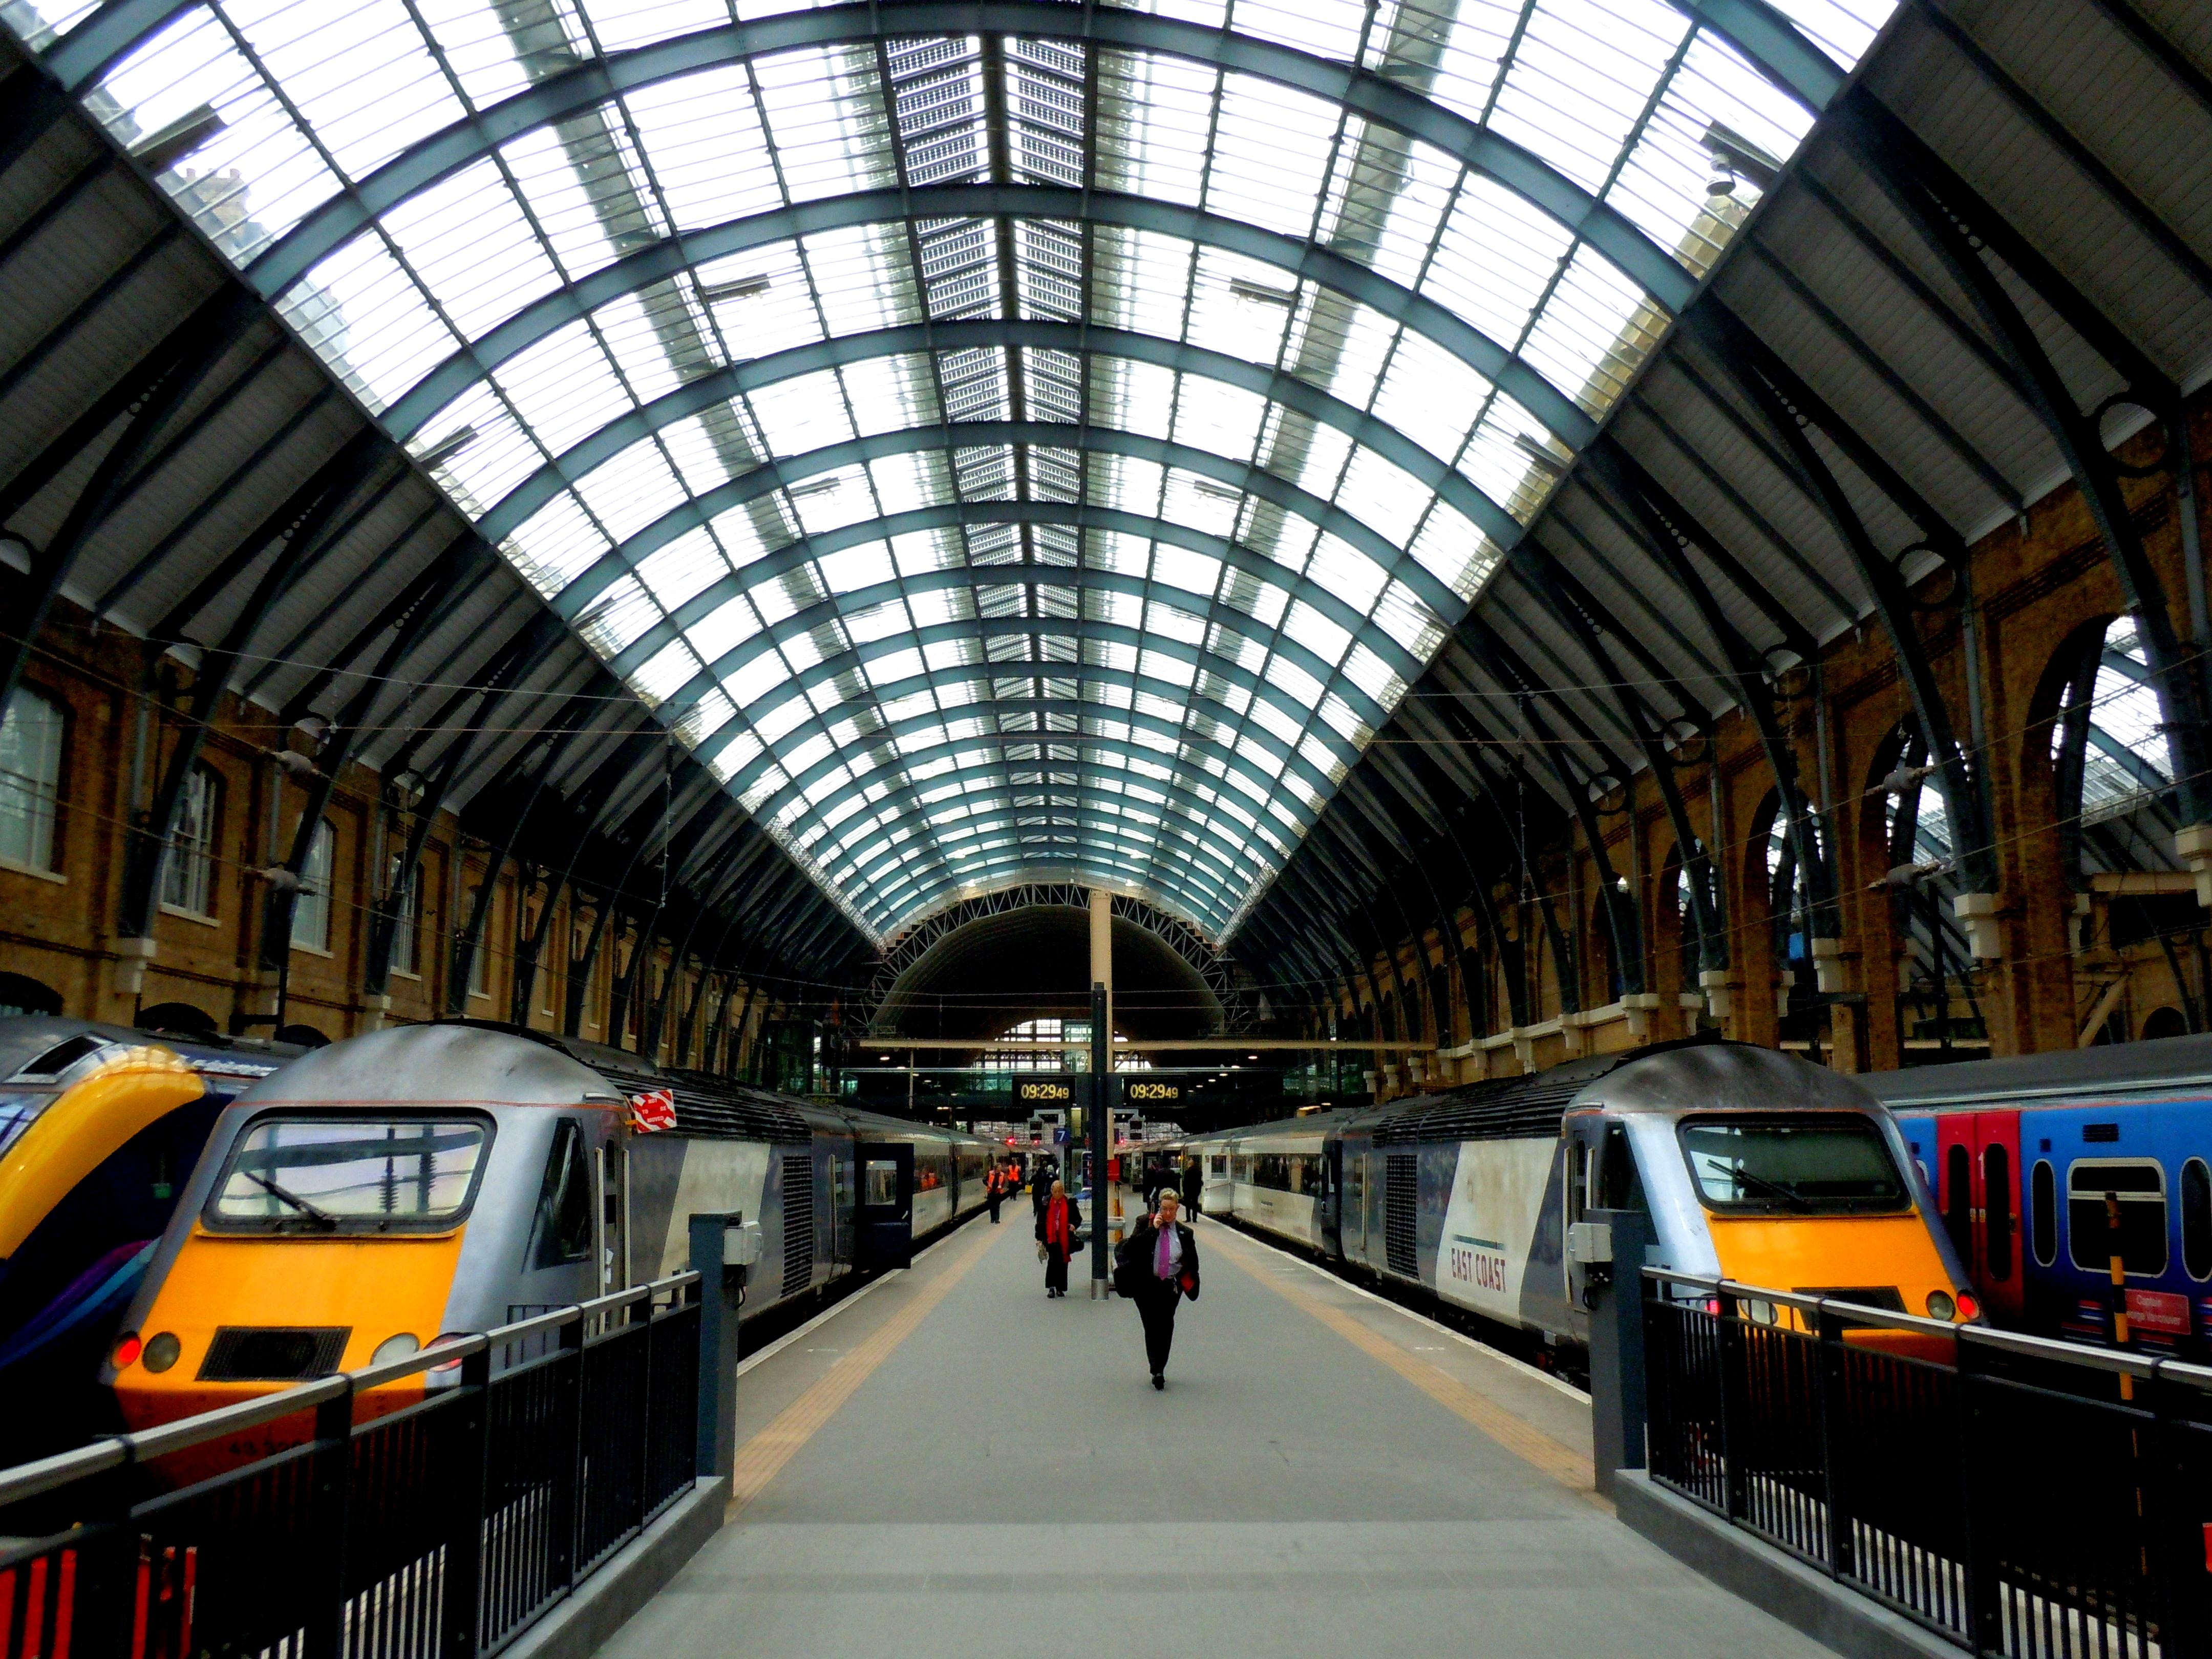 England Railway Station Station London England.jpg